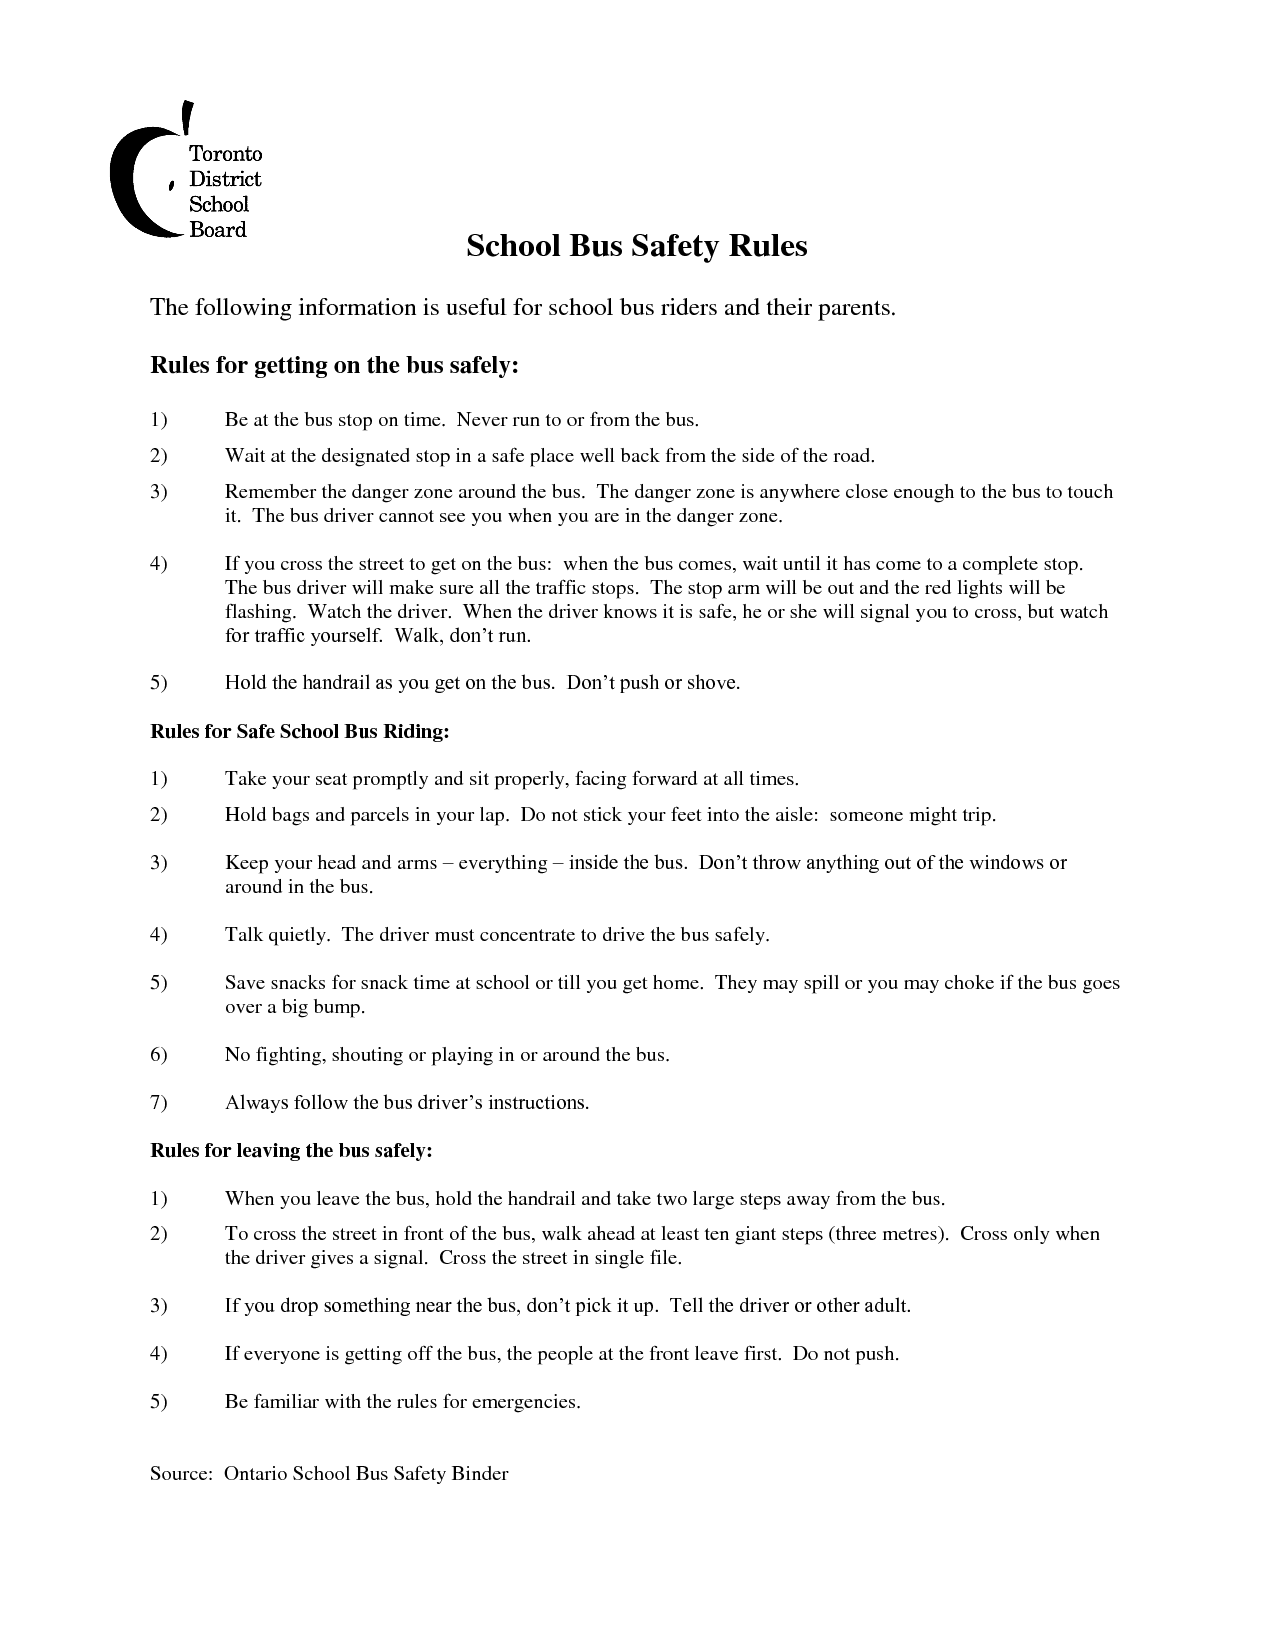 Worksheets Bus Safety Worksheets school bus safety rules projects to try pinterest rules